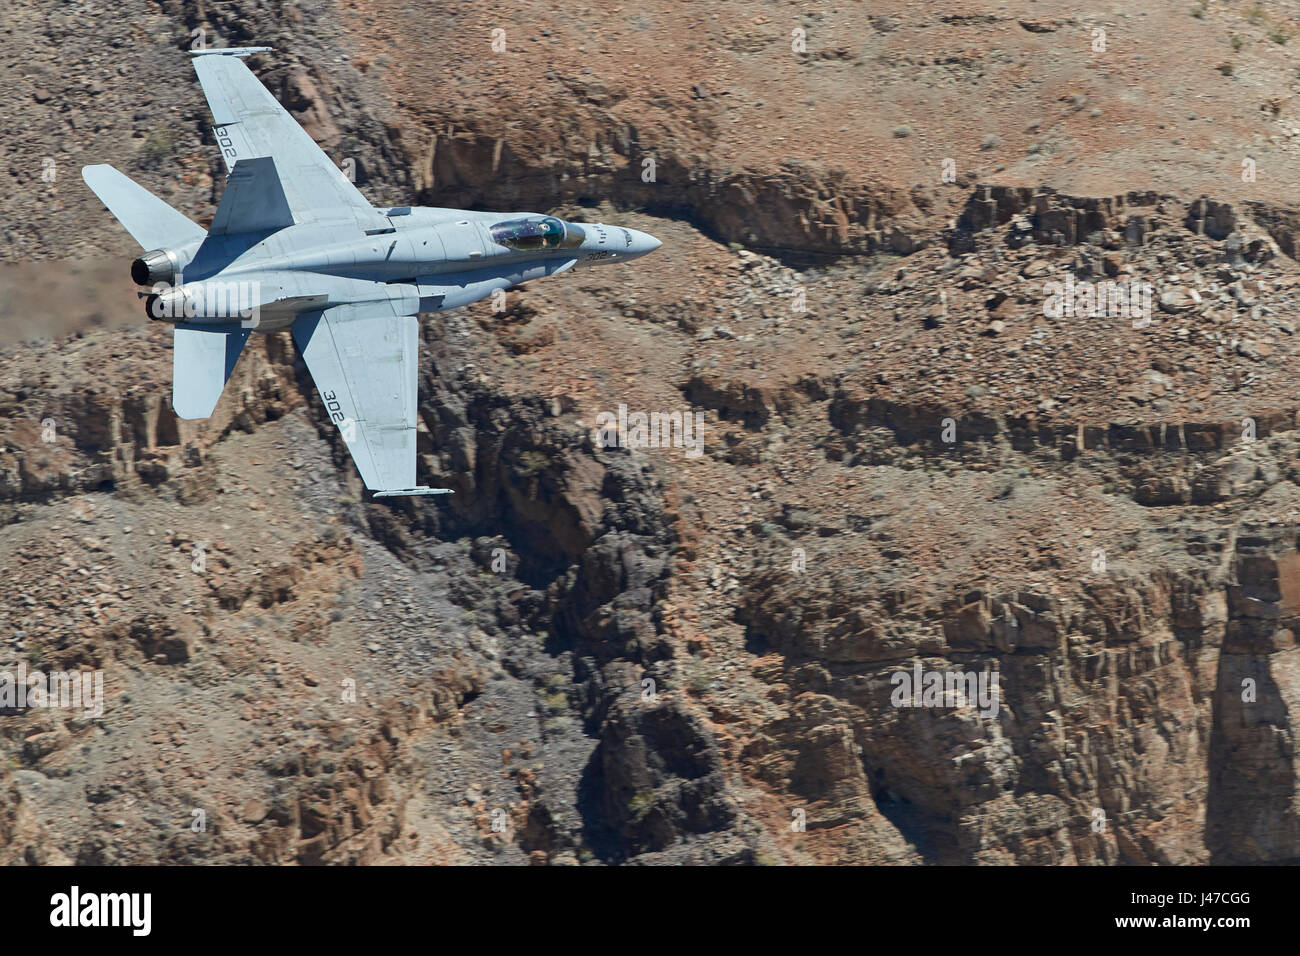 United States Navy F/A-18C, Hornet, Flying At High Speed And Low Level. Through A Desert Canyon. - Stock Image